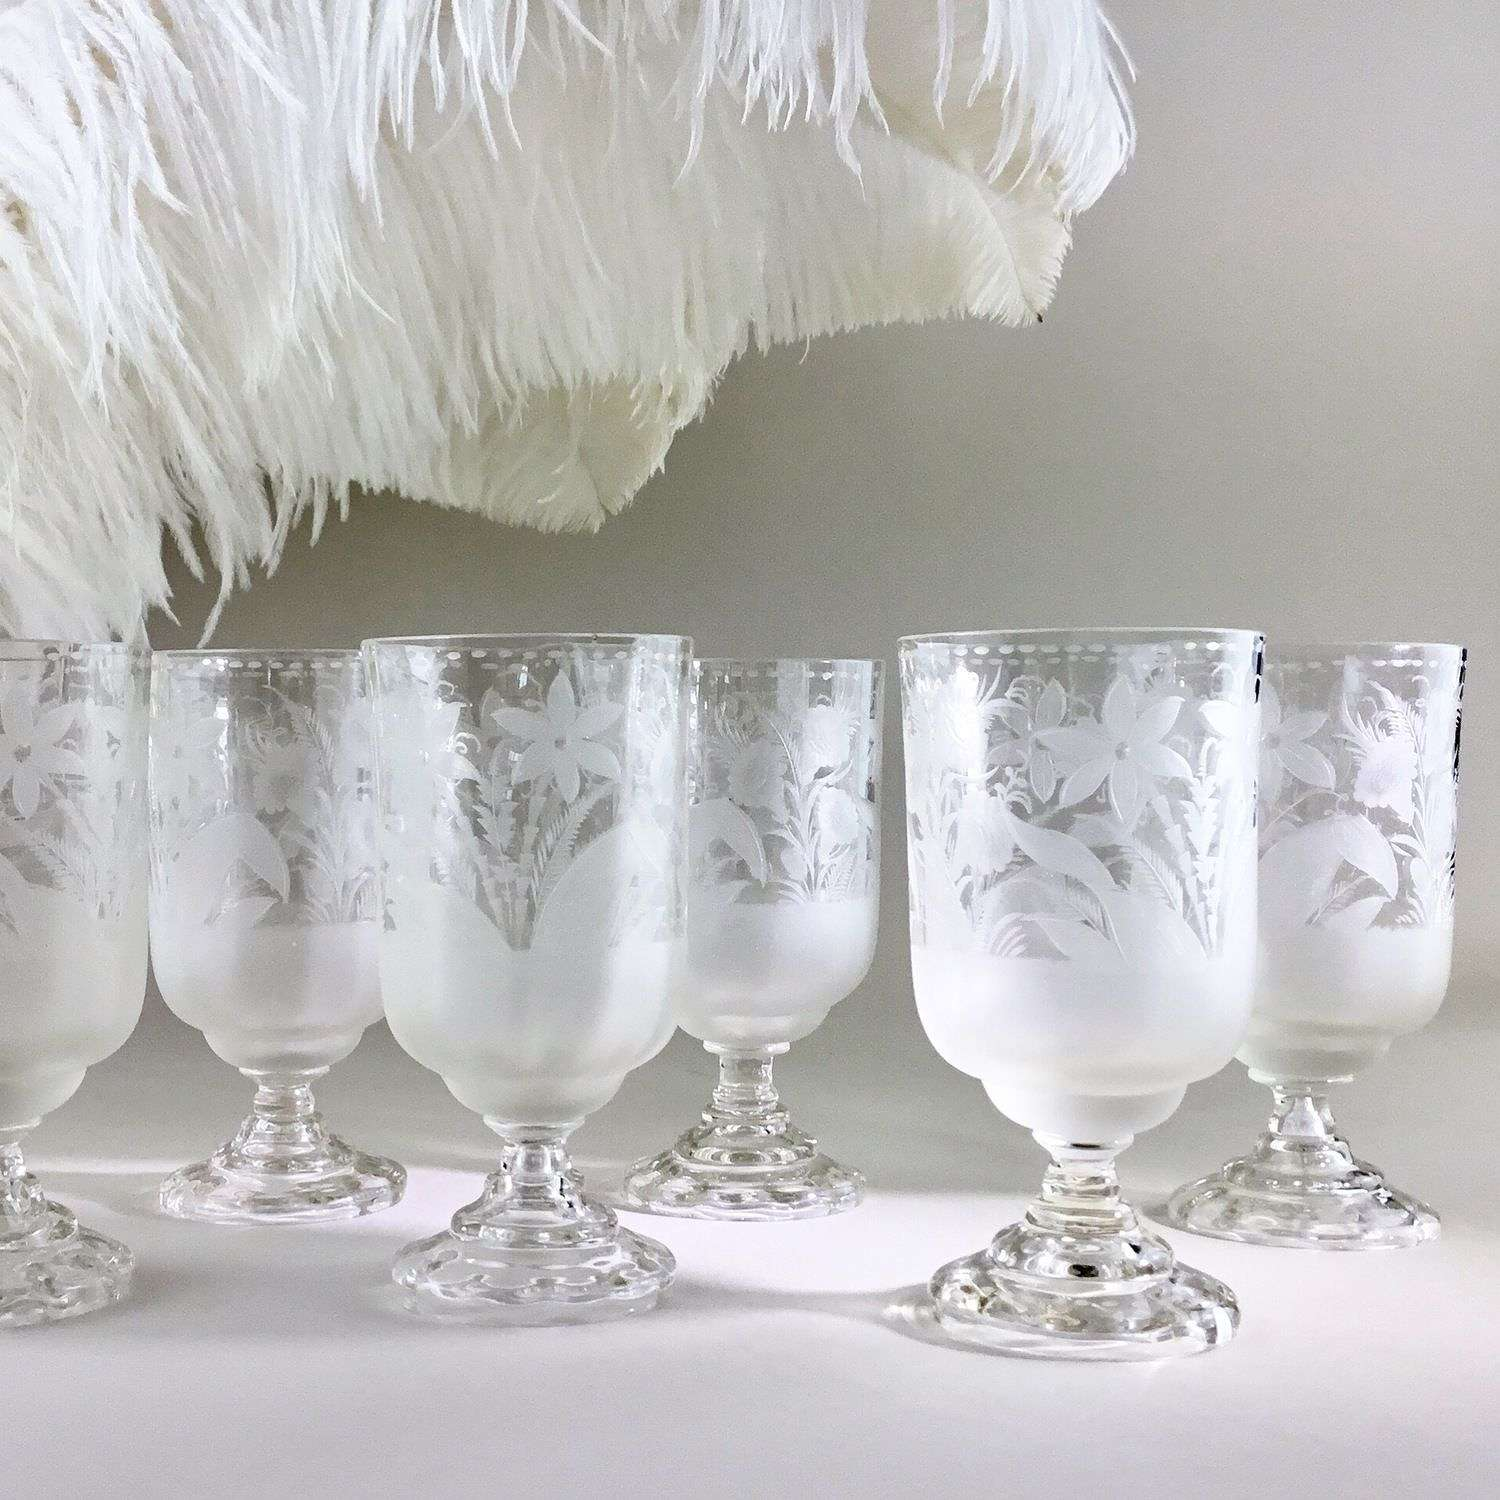 Beautiful early 1900s acid etched French glasses